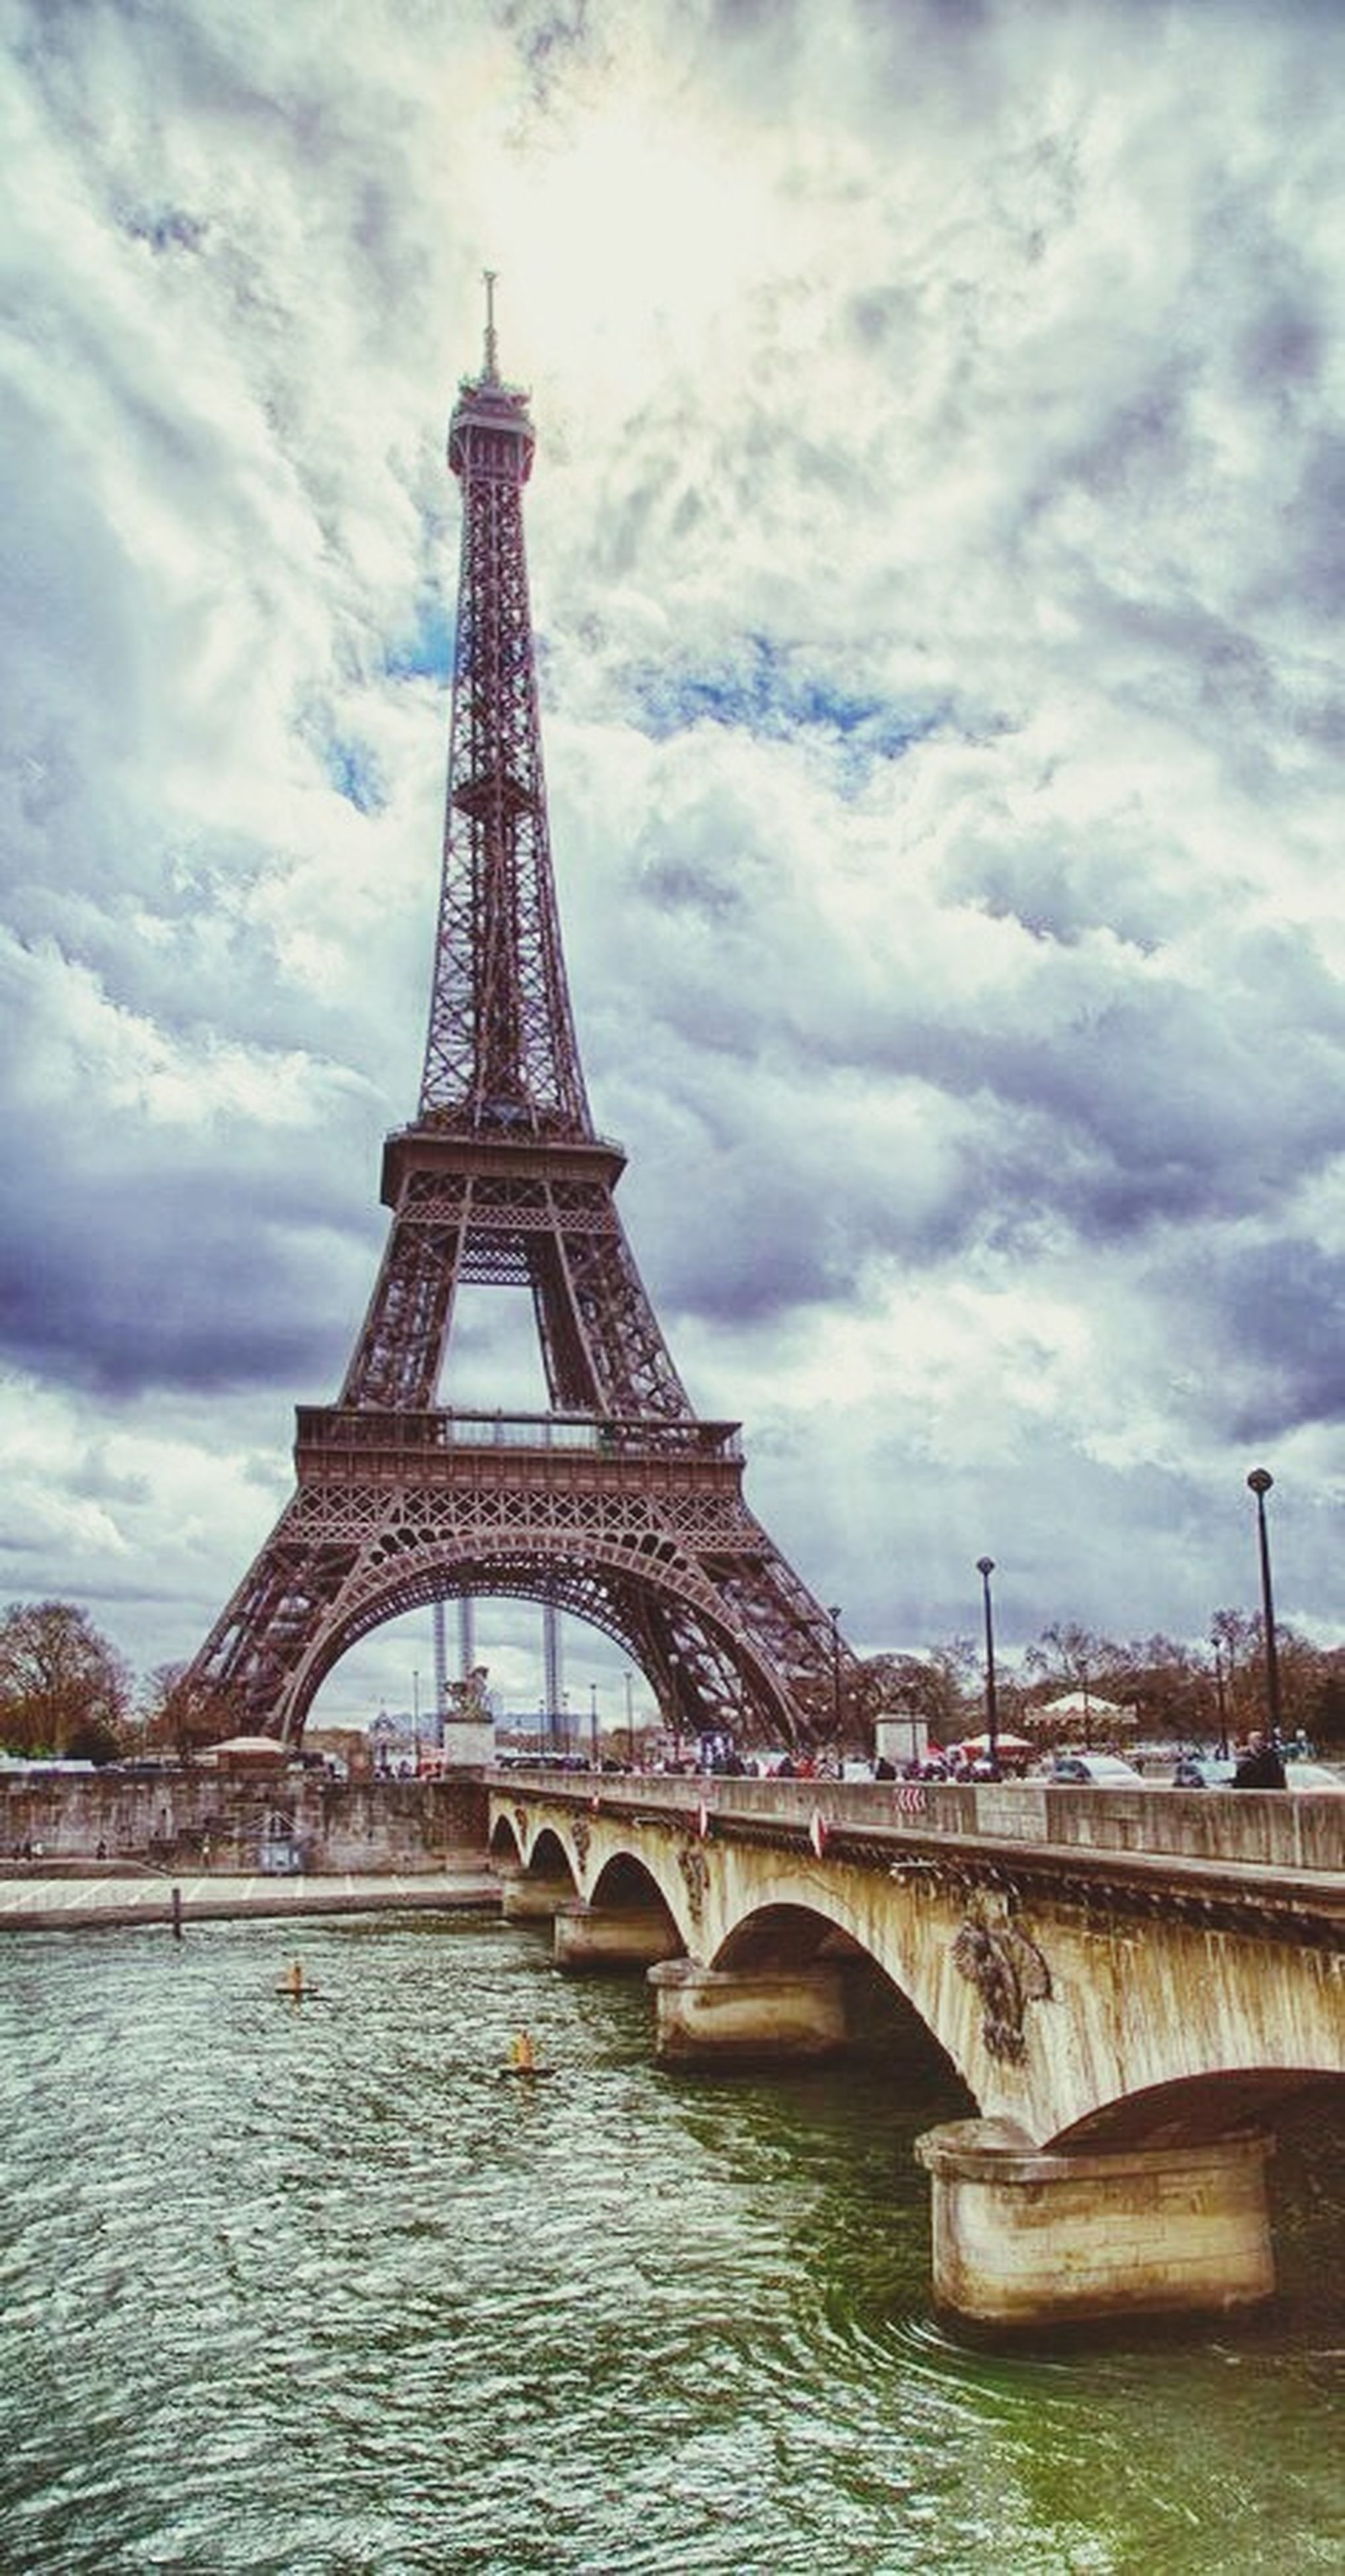 architecture, built structure, connection, bridge - man made structure, sky, cloud - sky, engineering, water, river, international landmark, cloudy, famous place, travel destinations, transportation, low angle view, travel, tourism, eiffel tower, cloud, capital cities